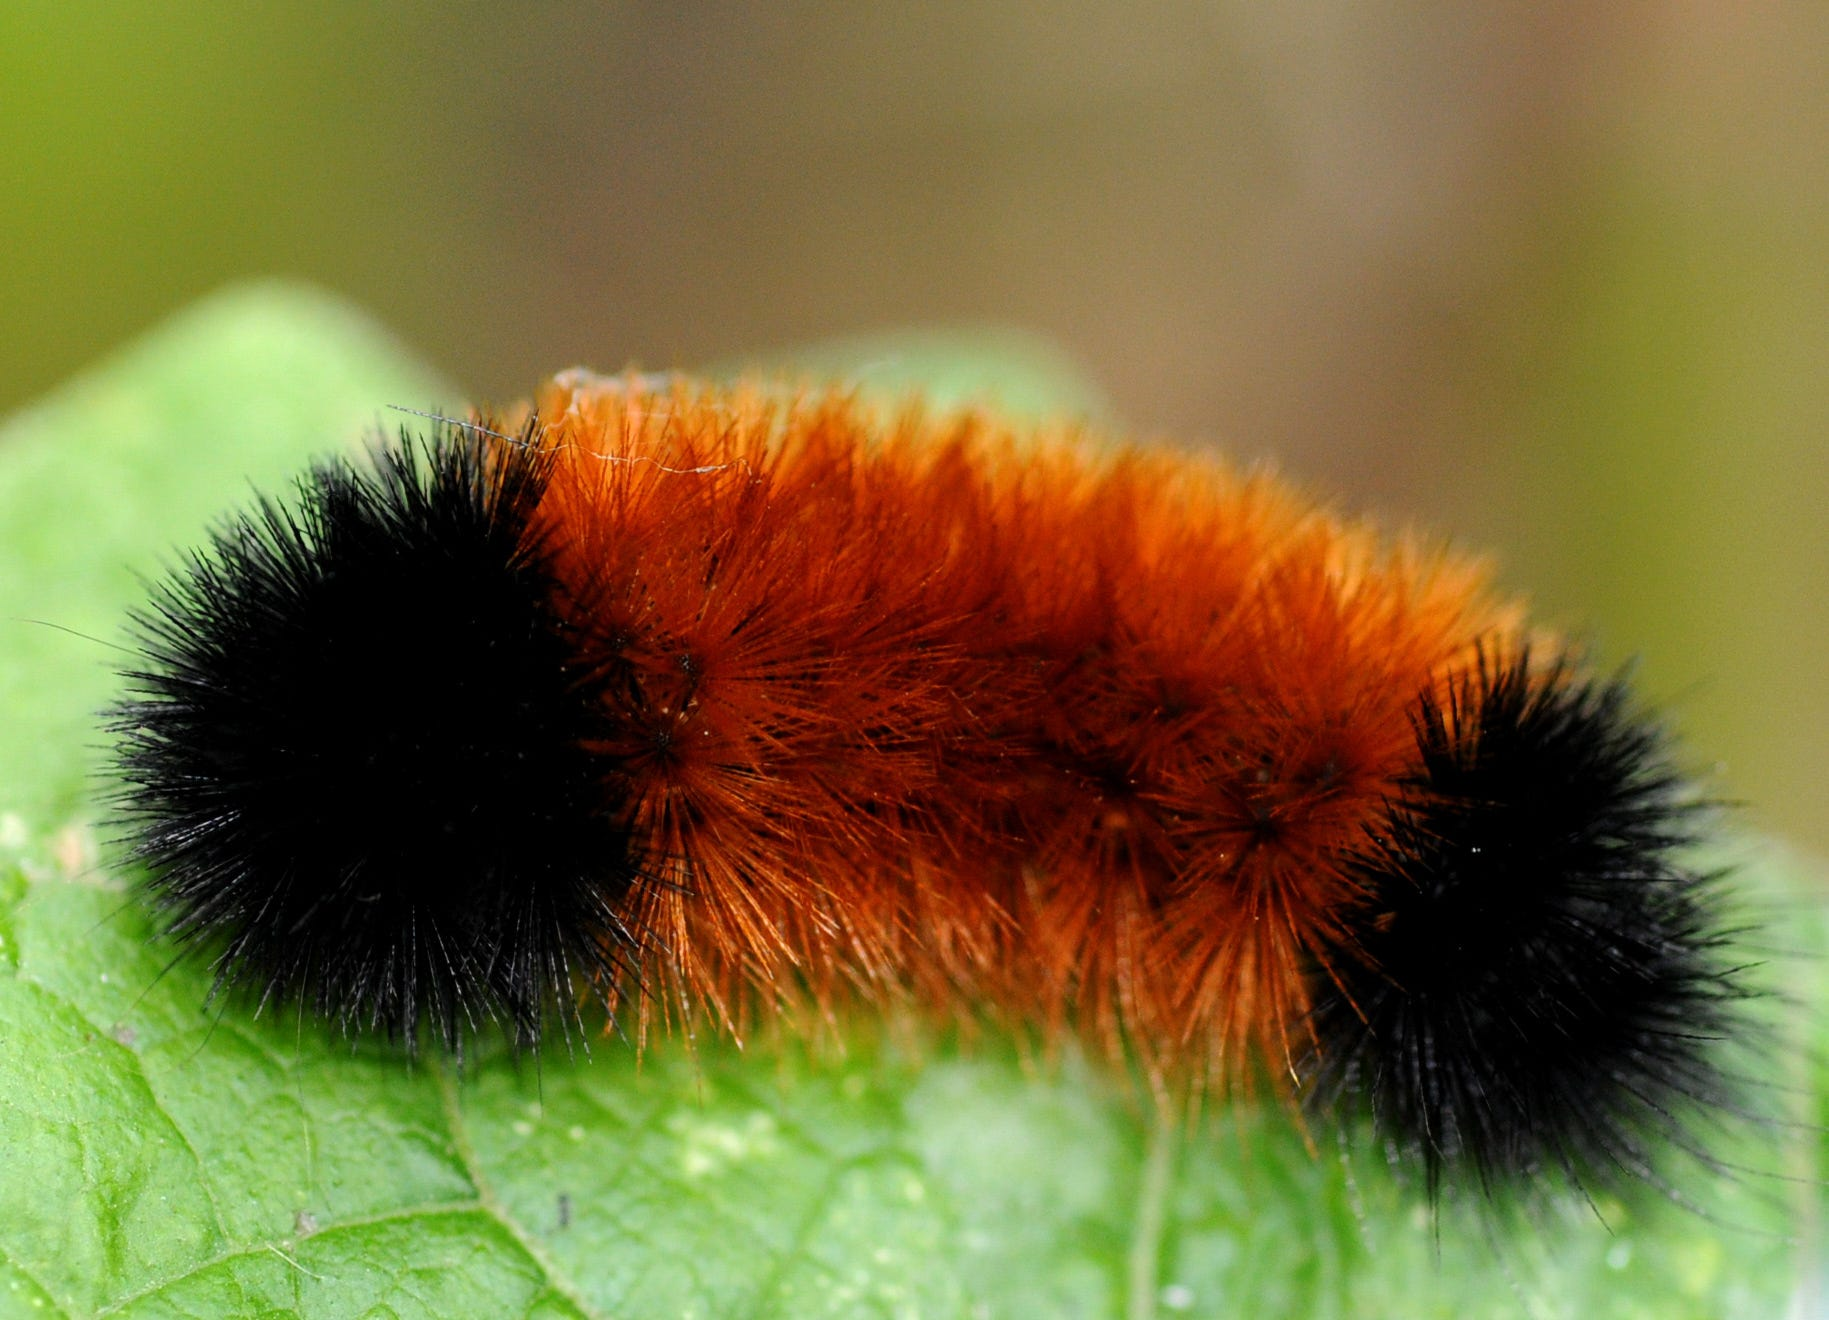 The River Revitalization Foundation's Woolly Bear Festival puts woolly bear caterpillars and their weather-predicting ways on center stage.